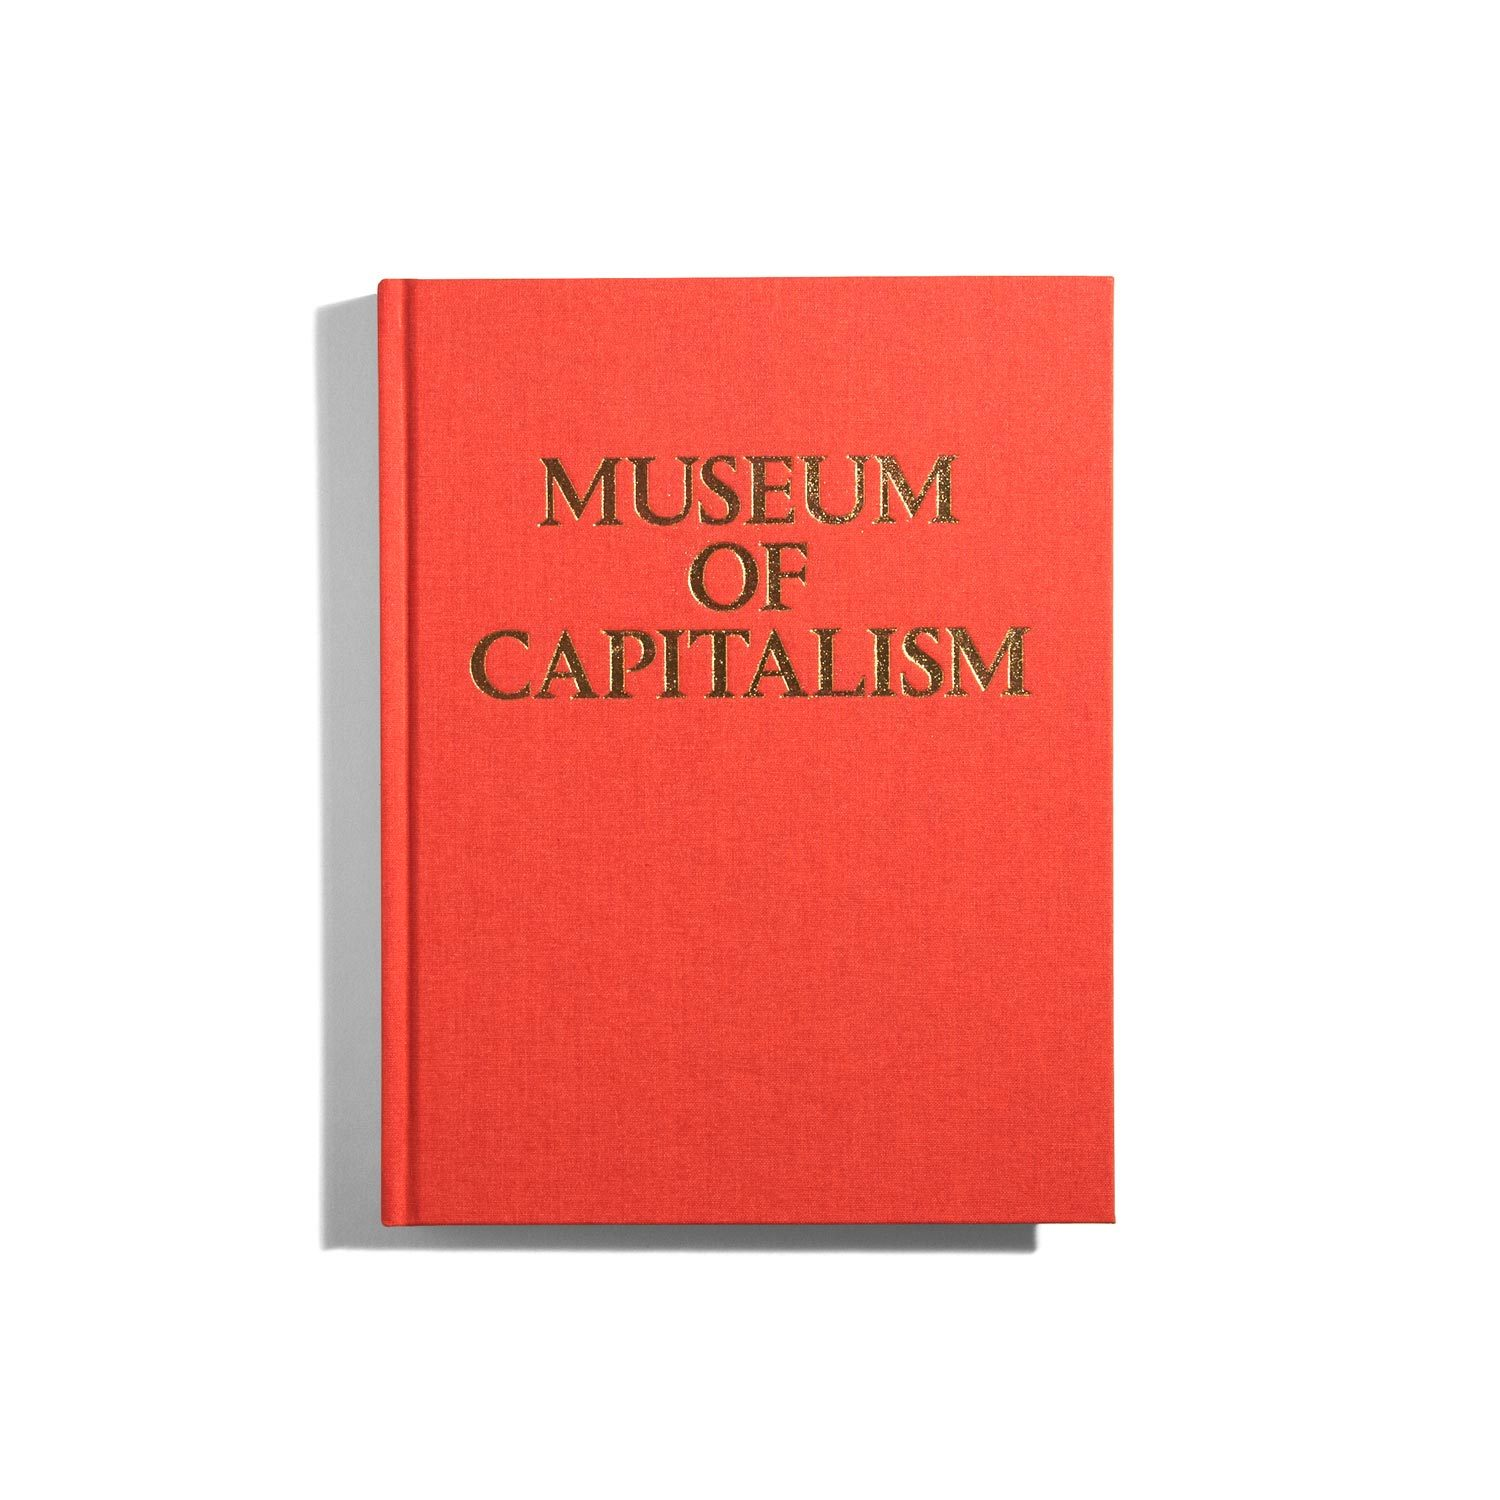 The Museum of Capitalism